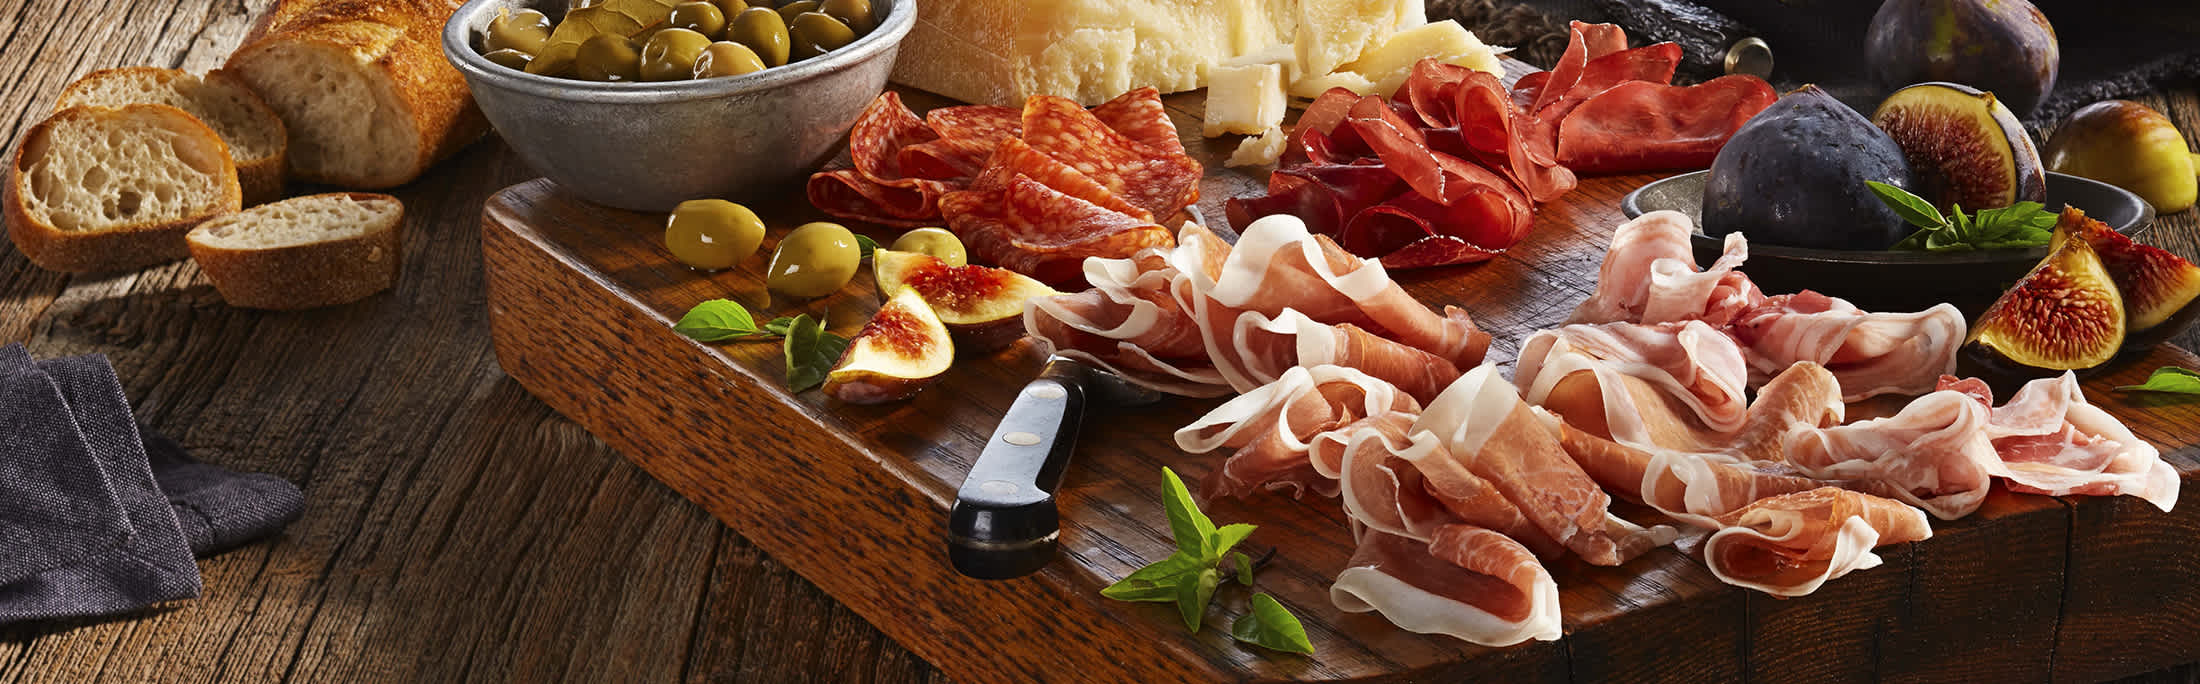 charcuterie board header image